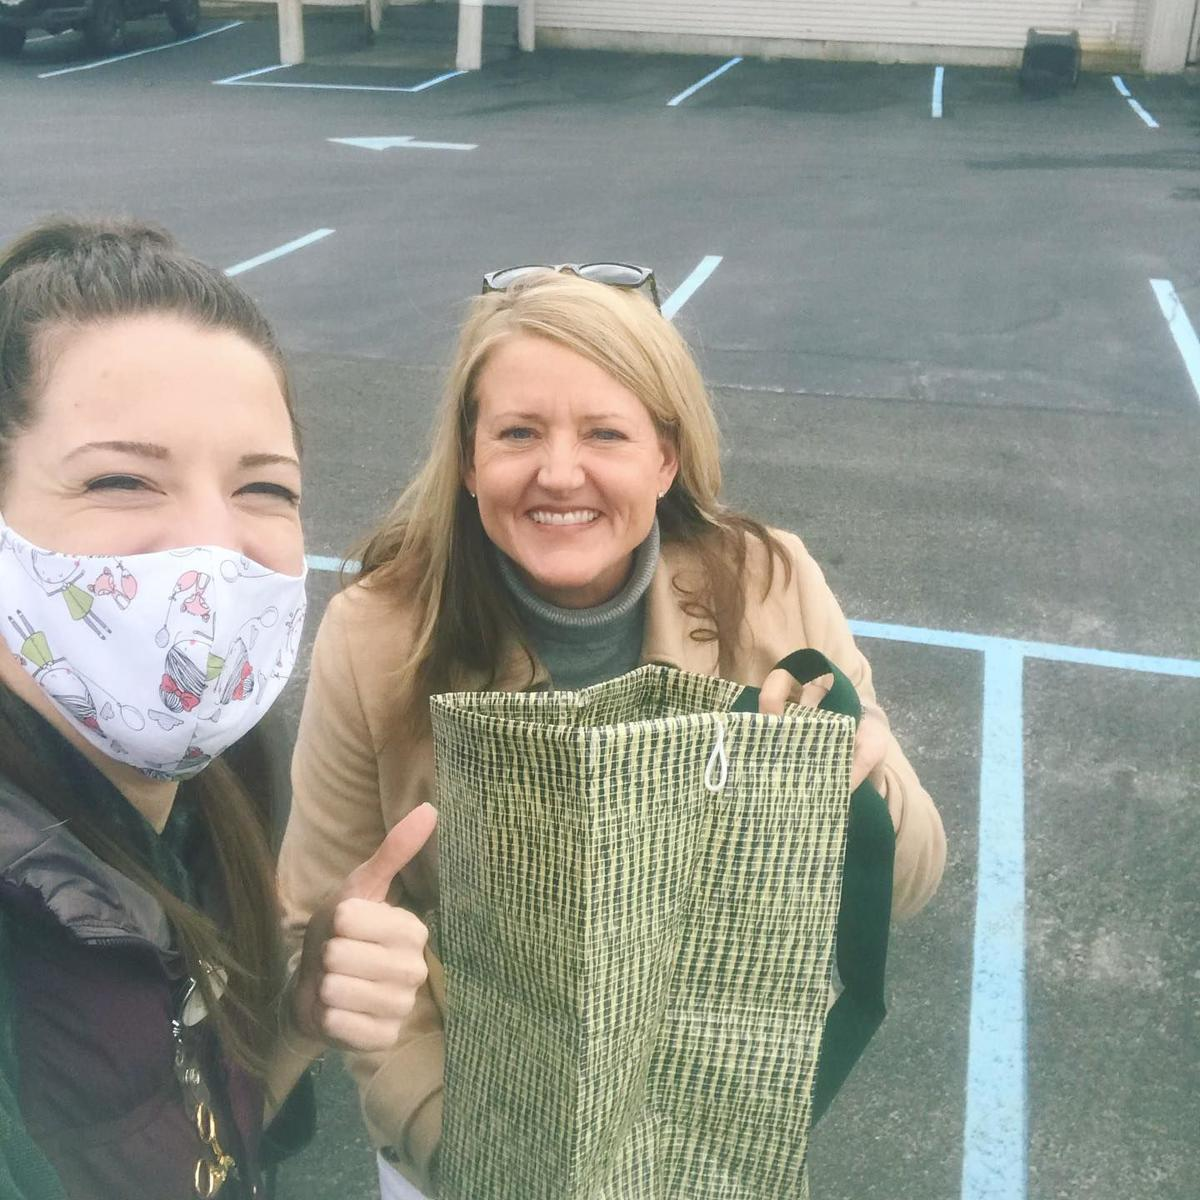 West Warwick's Tricia Sellon leads volunteer team to make free masks